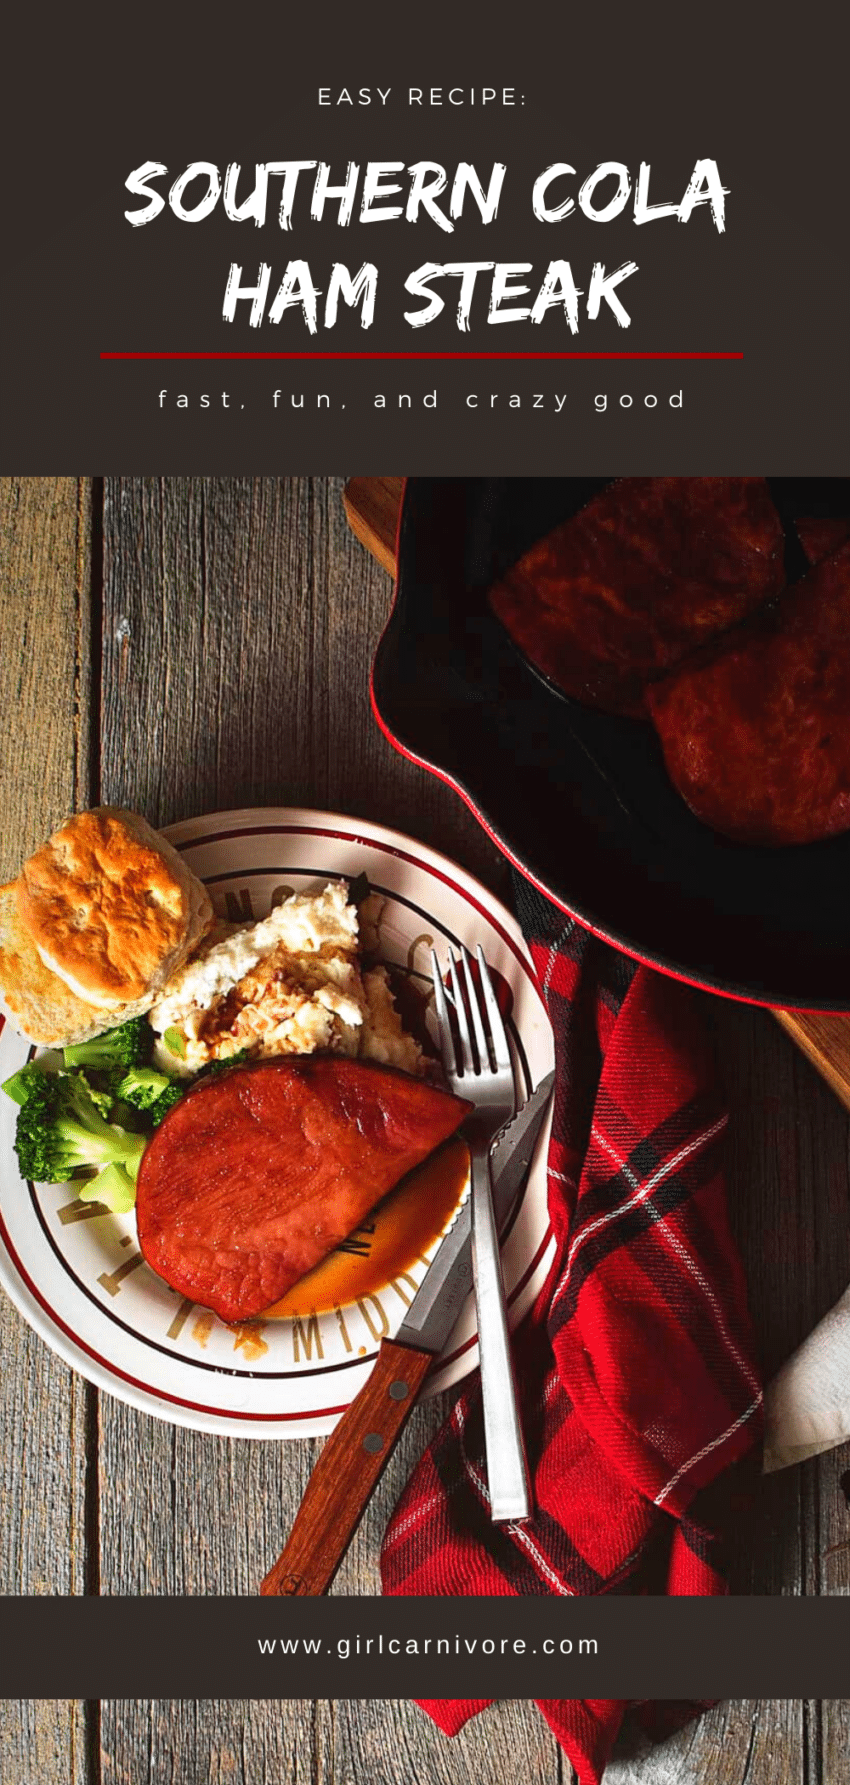 This ham steak recipe is one of my favorites! It's so easy and drenched in a sweet southern cola sauce that is fast to make! Classic comfort food all in one skillet.